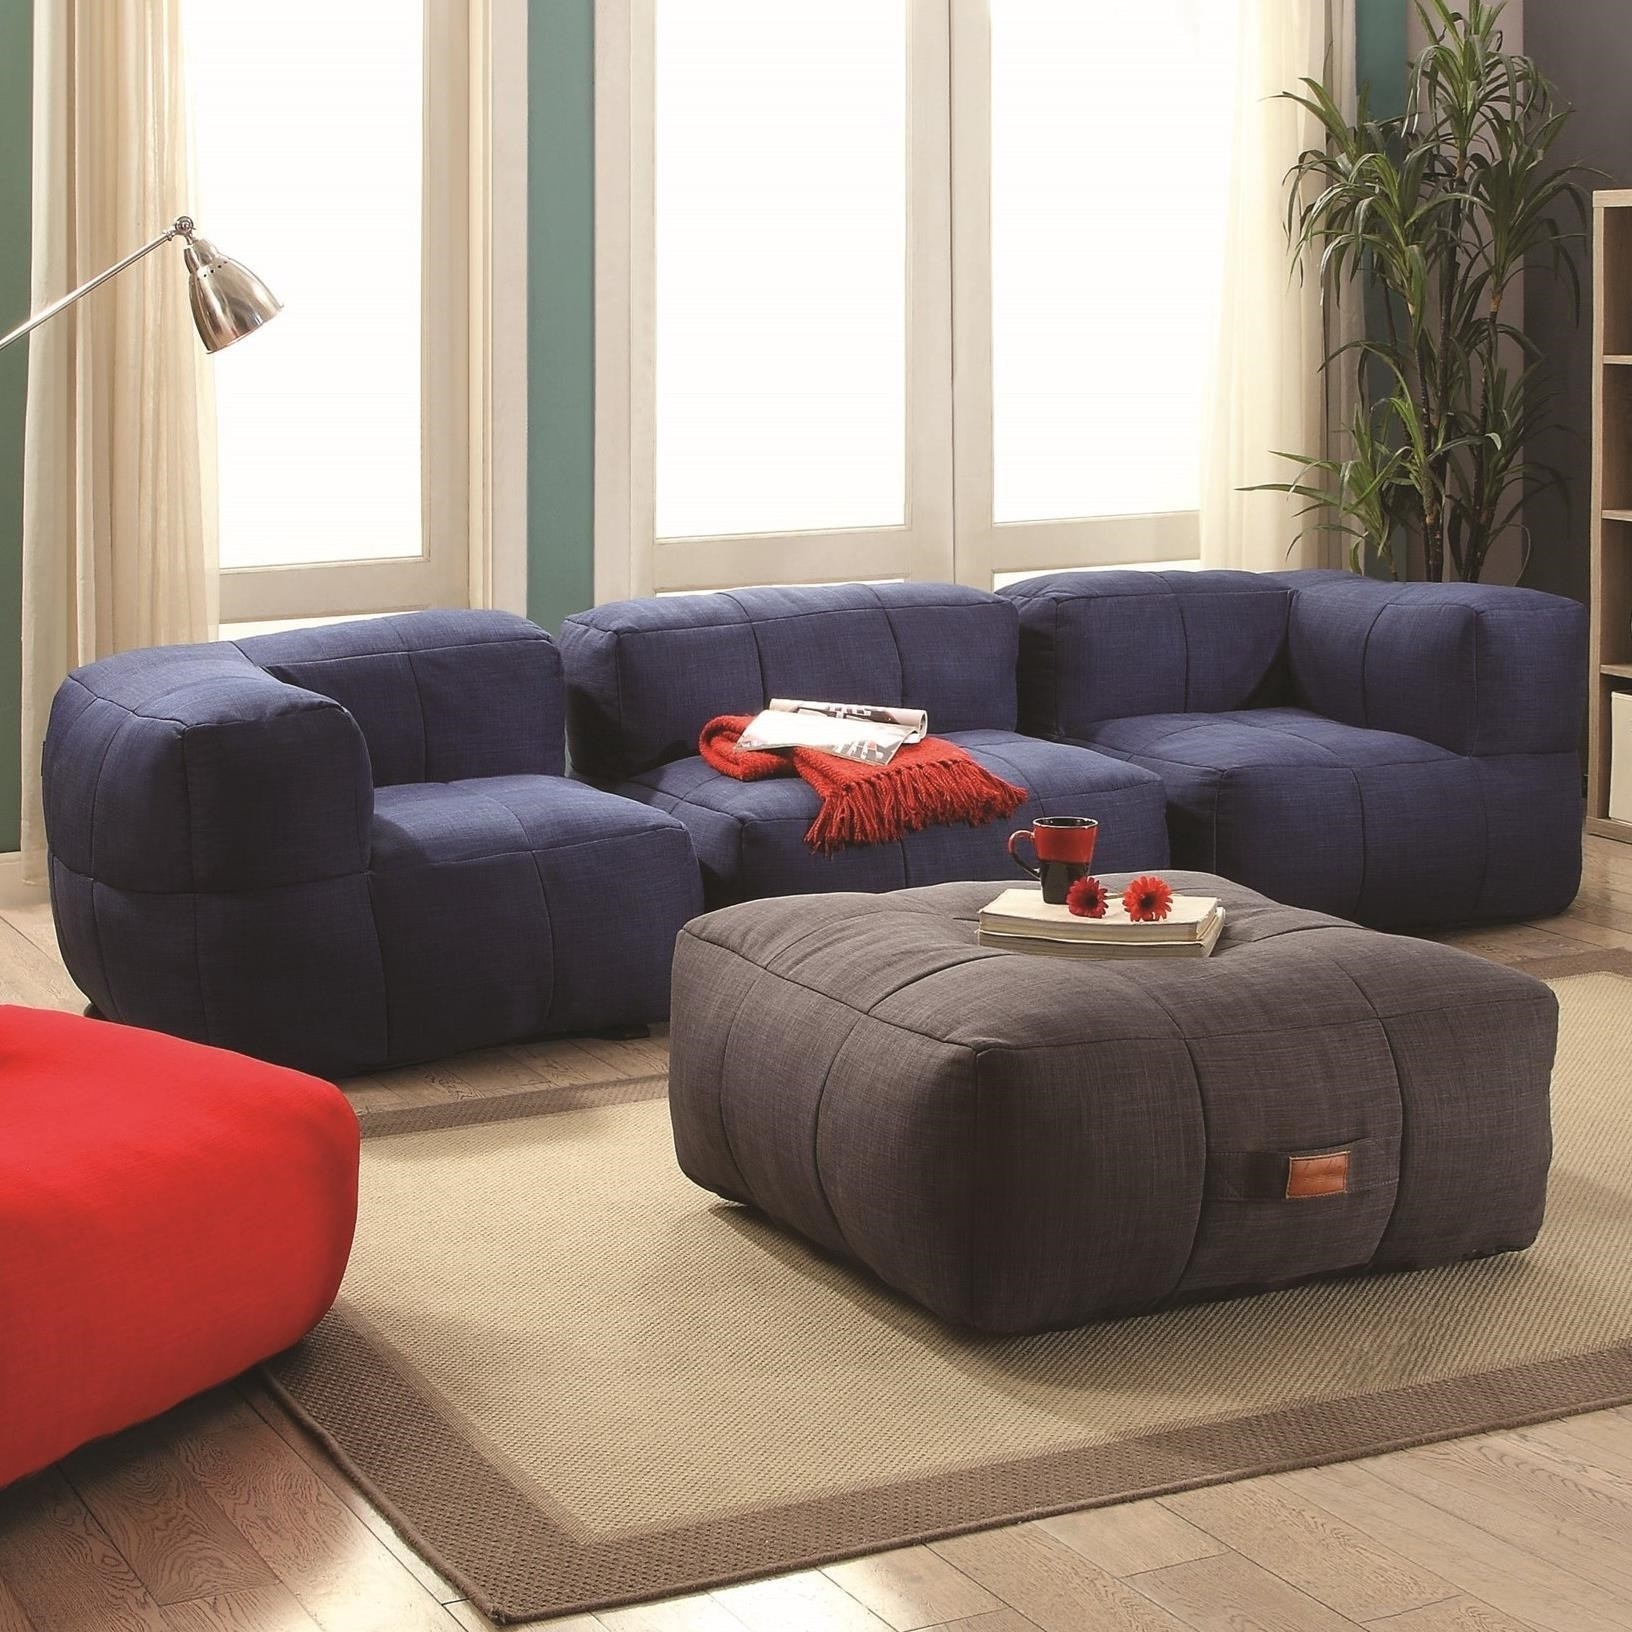 10 Best Nj Sectional Sofas Sofa Ideas